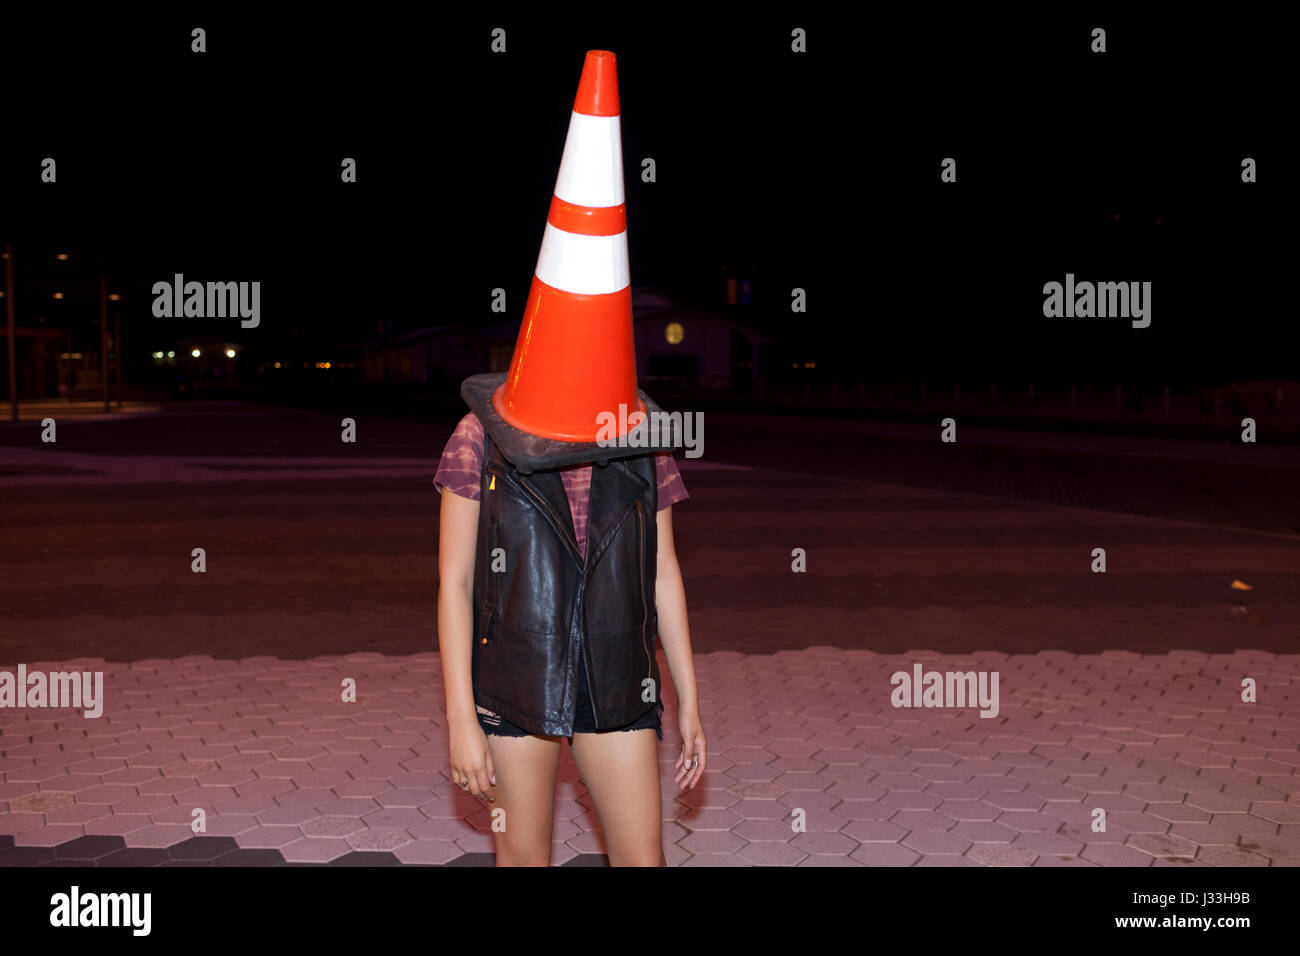 Playful young woman with a traffic cone on her head - Stock Image